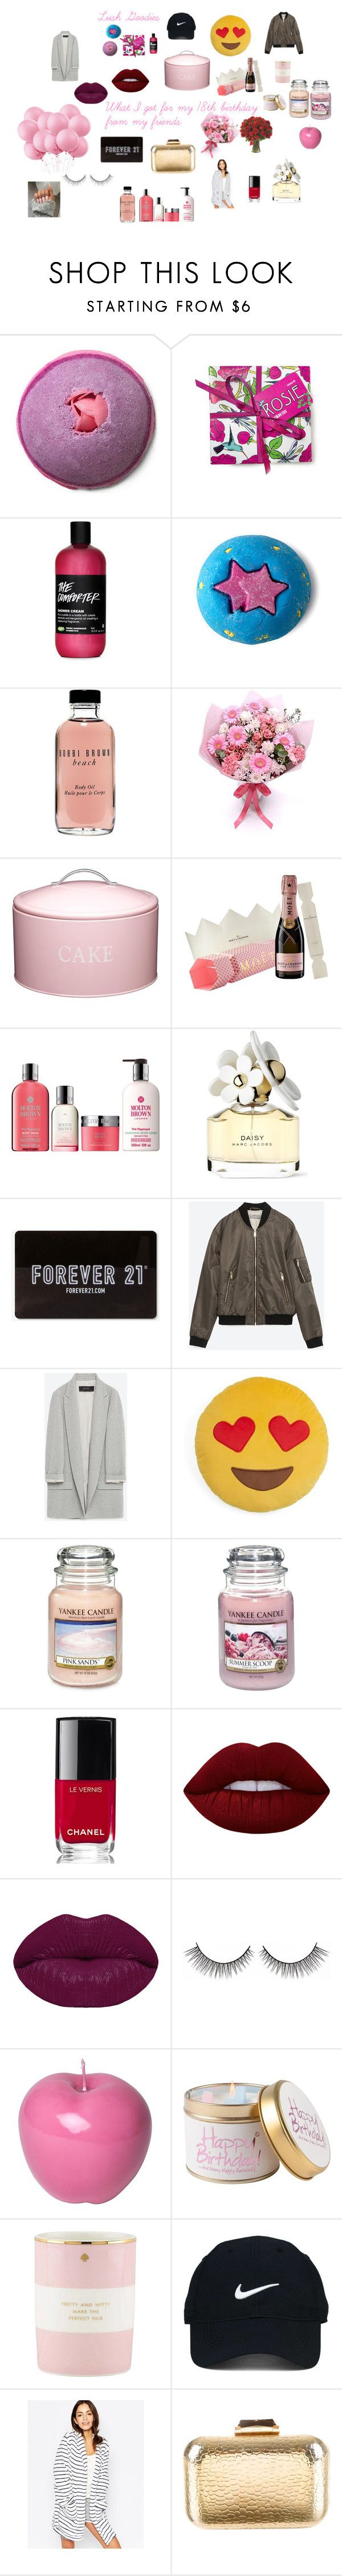 Ms de 25 ideas increbles sobre cosmetic kitchen en pinterest by allgoodbabybaby liked on polyvore featuring bobbi brown cosmetics kitchen craft molton brown marc jacobs forever 21 zara throwboy yankee candle solutioingenieria Gallery